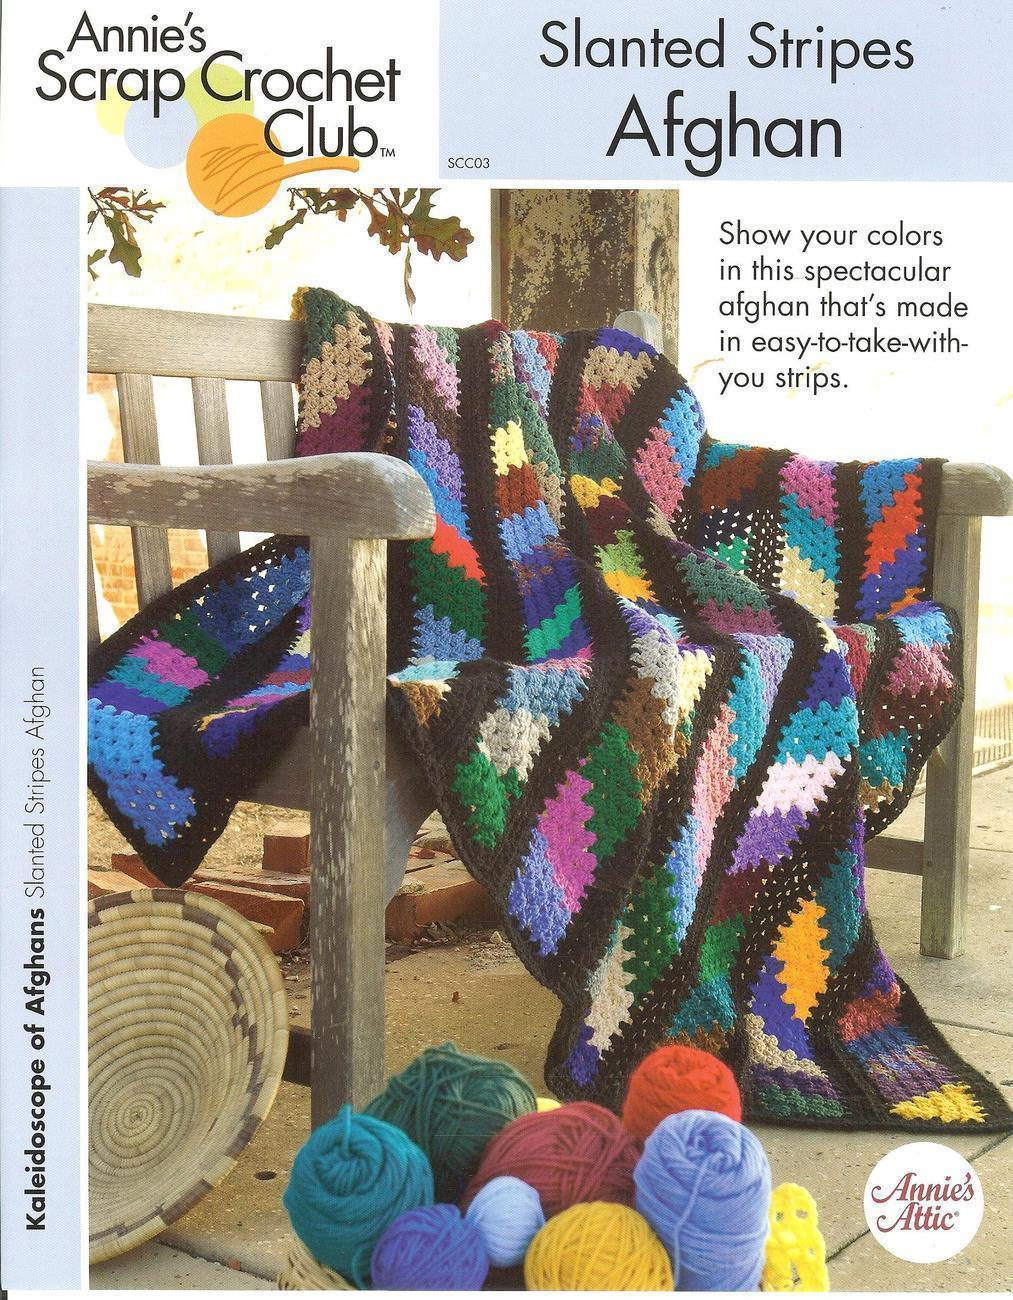 Annie S Culinary Creations Part 2: ANNIE'S SLANTED STRIPES AFGHAN CROCHET PATTERN